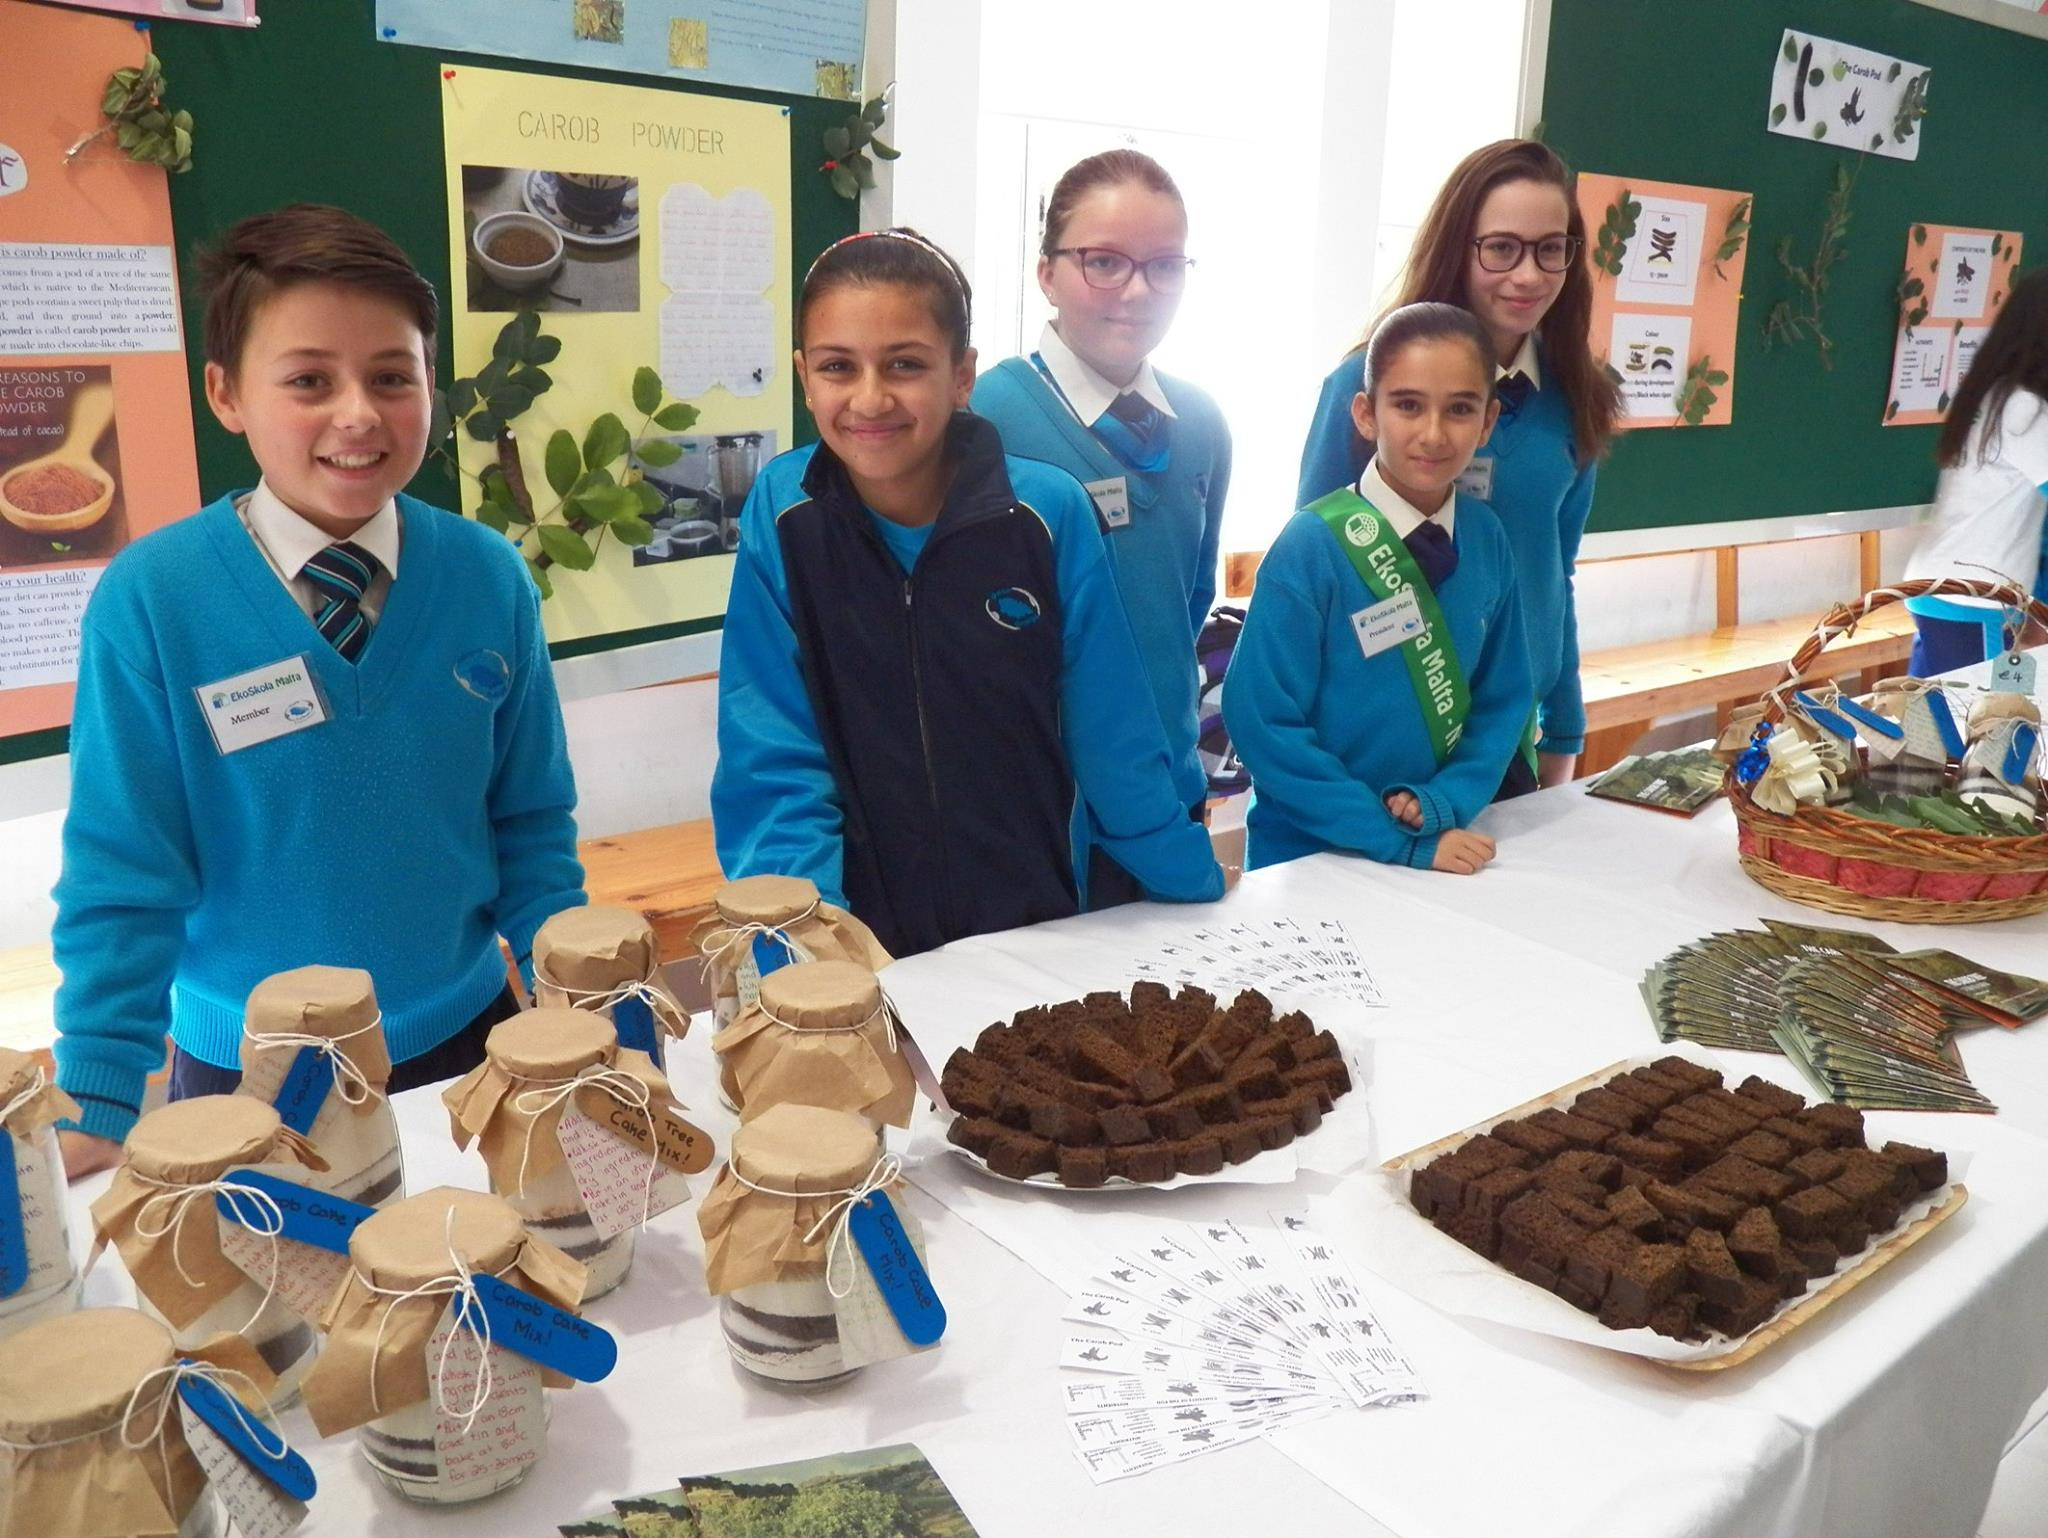 Students presenting their work during the school's Open Day - carob syrup and carob cake